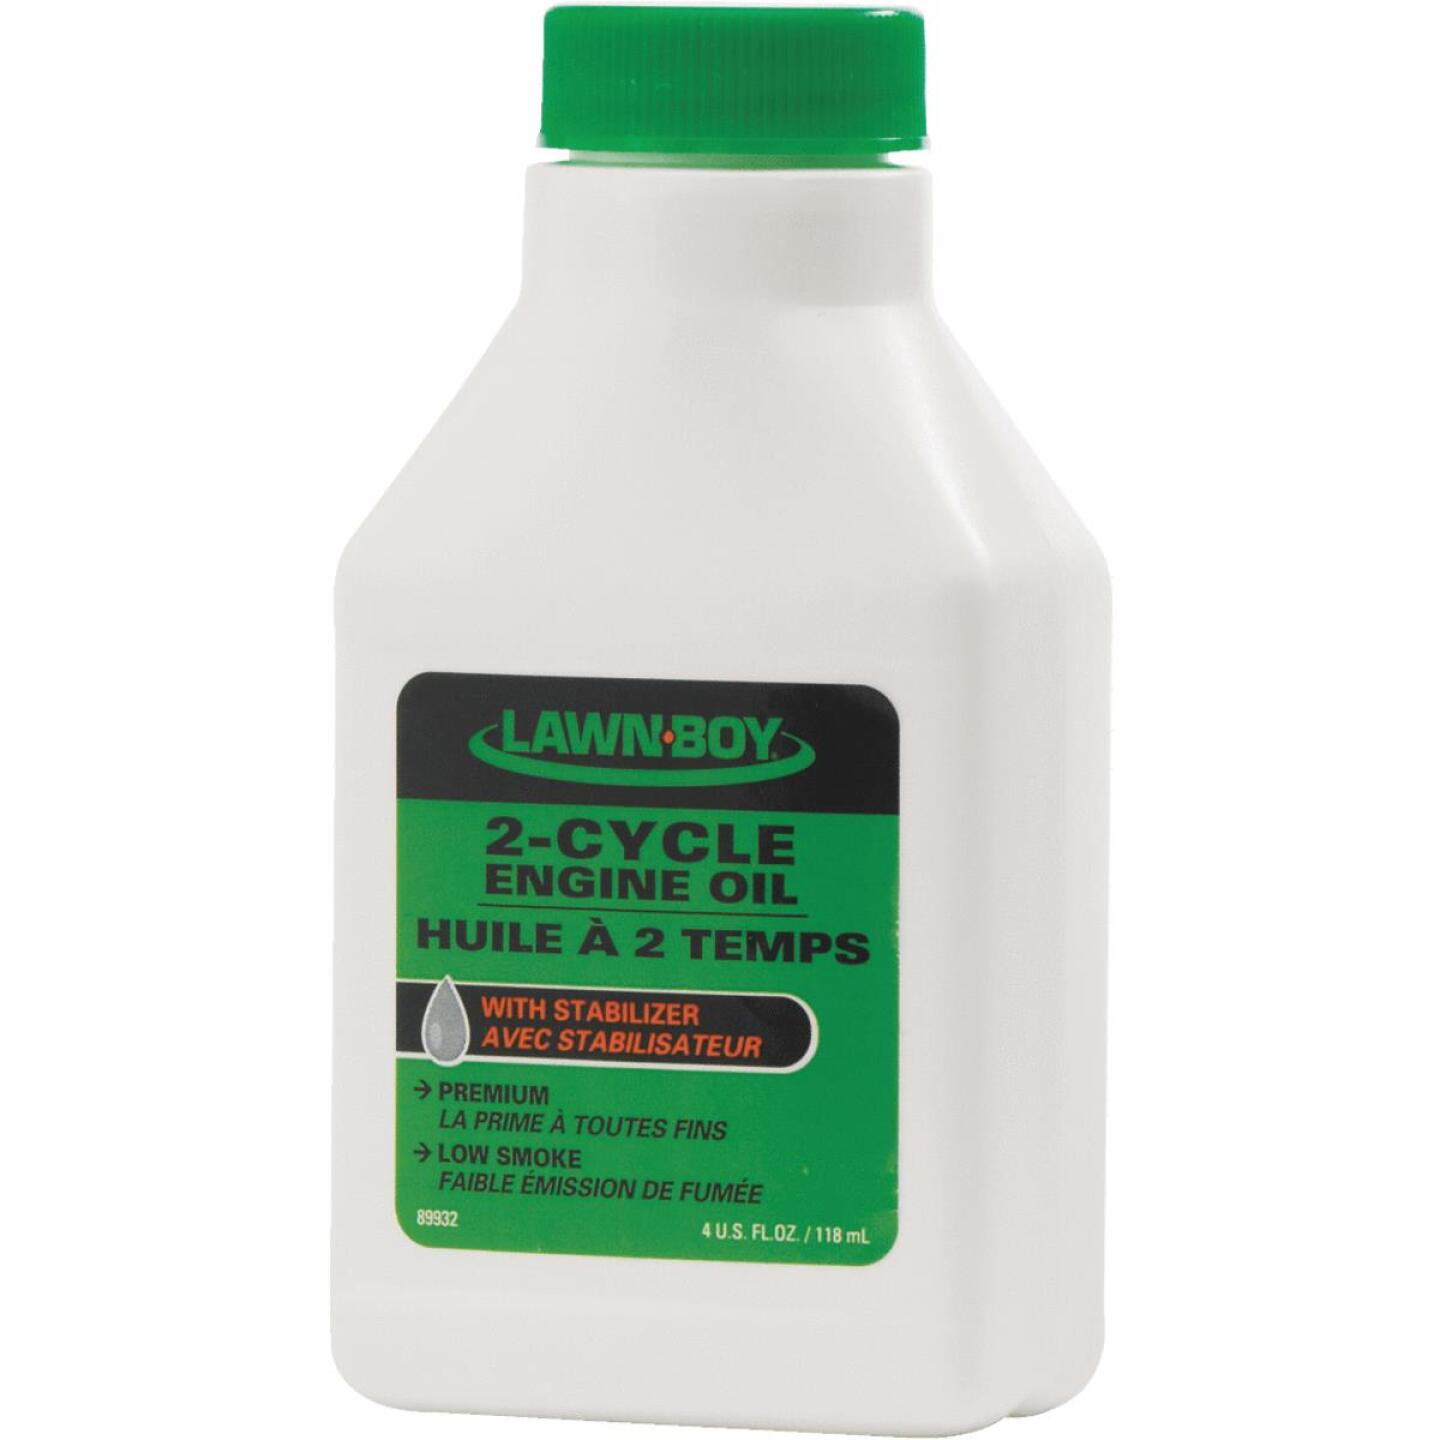 Lawn Boy 2-Cycle Oil, 4 Oz. Image 1